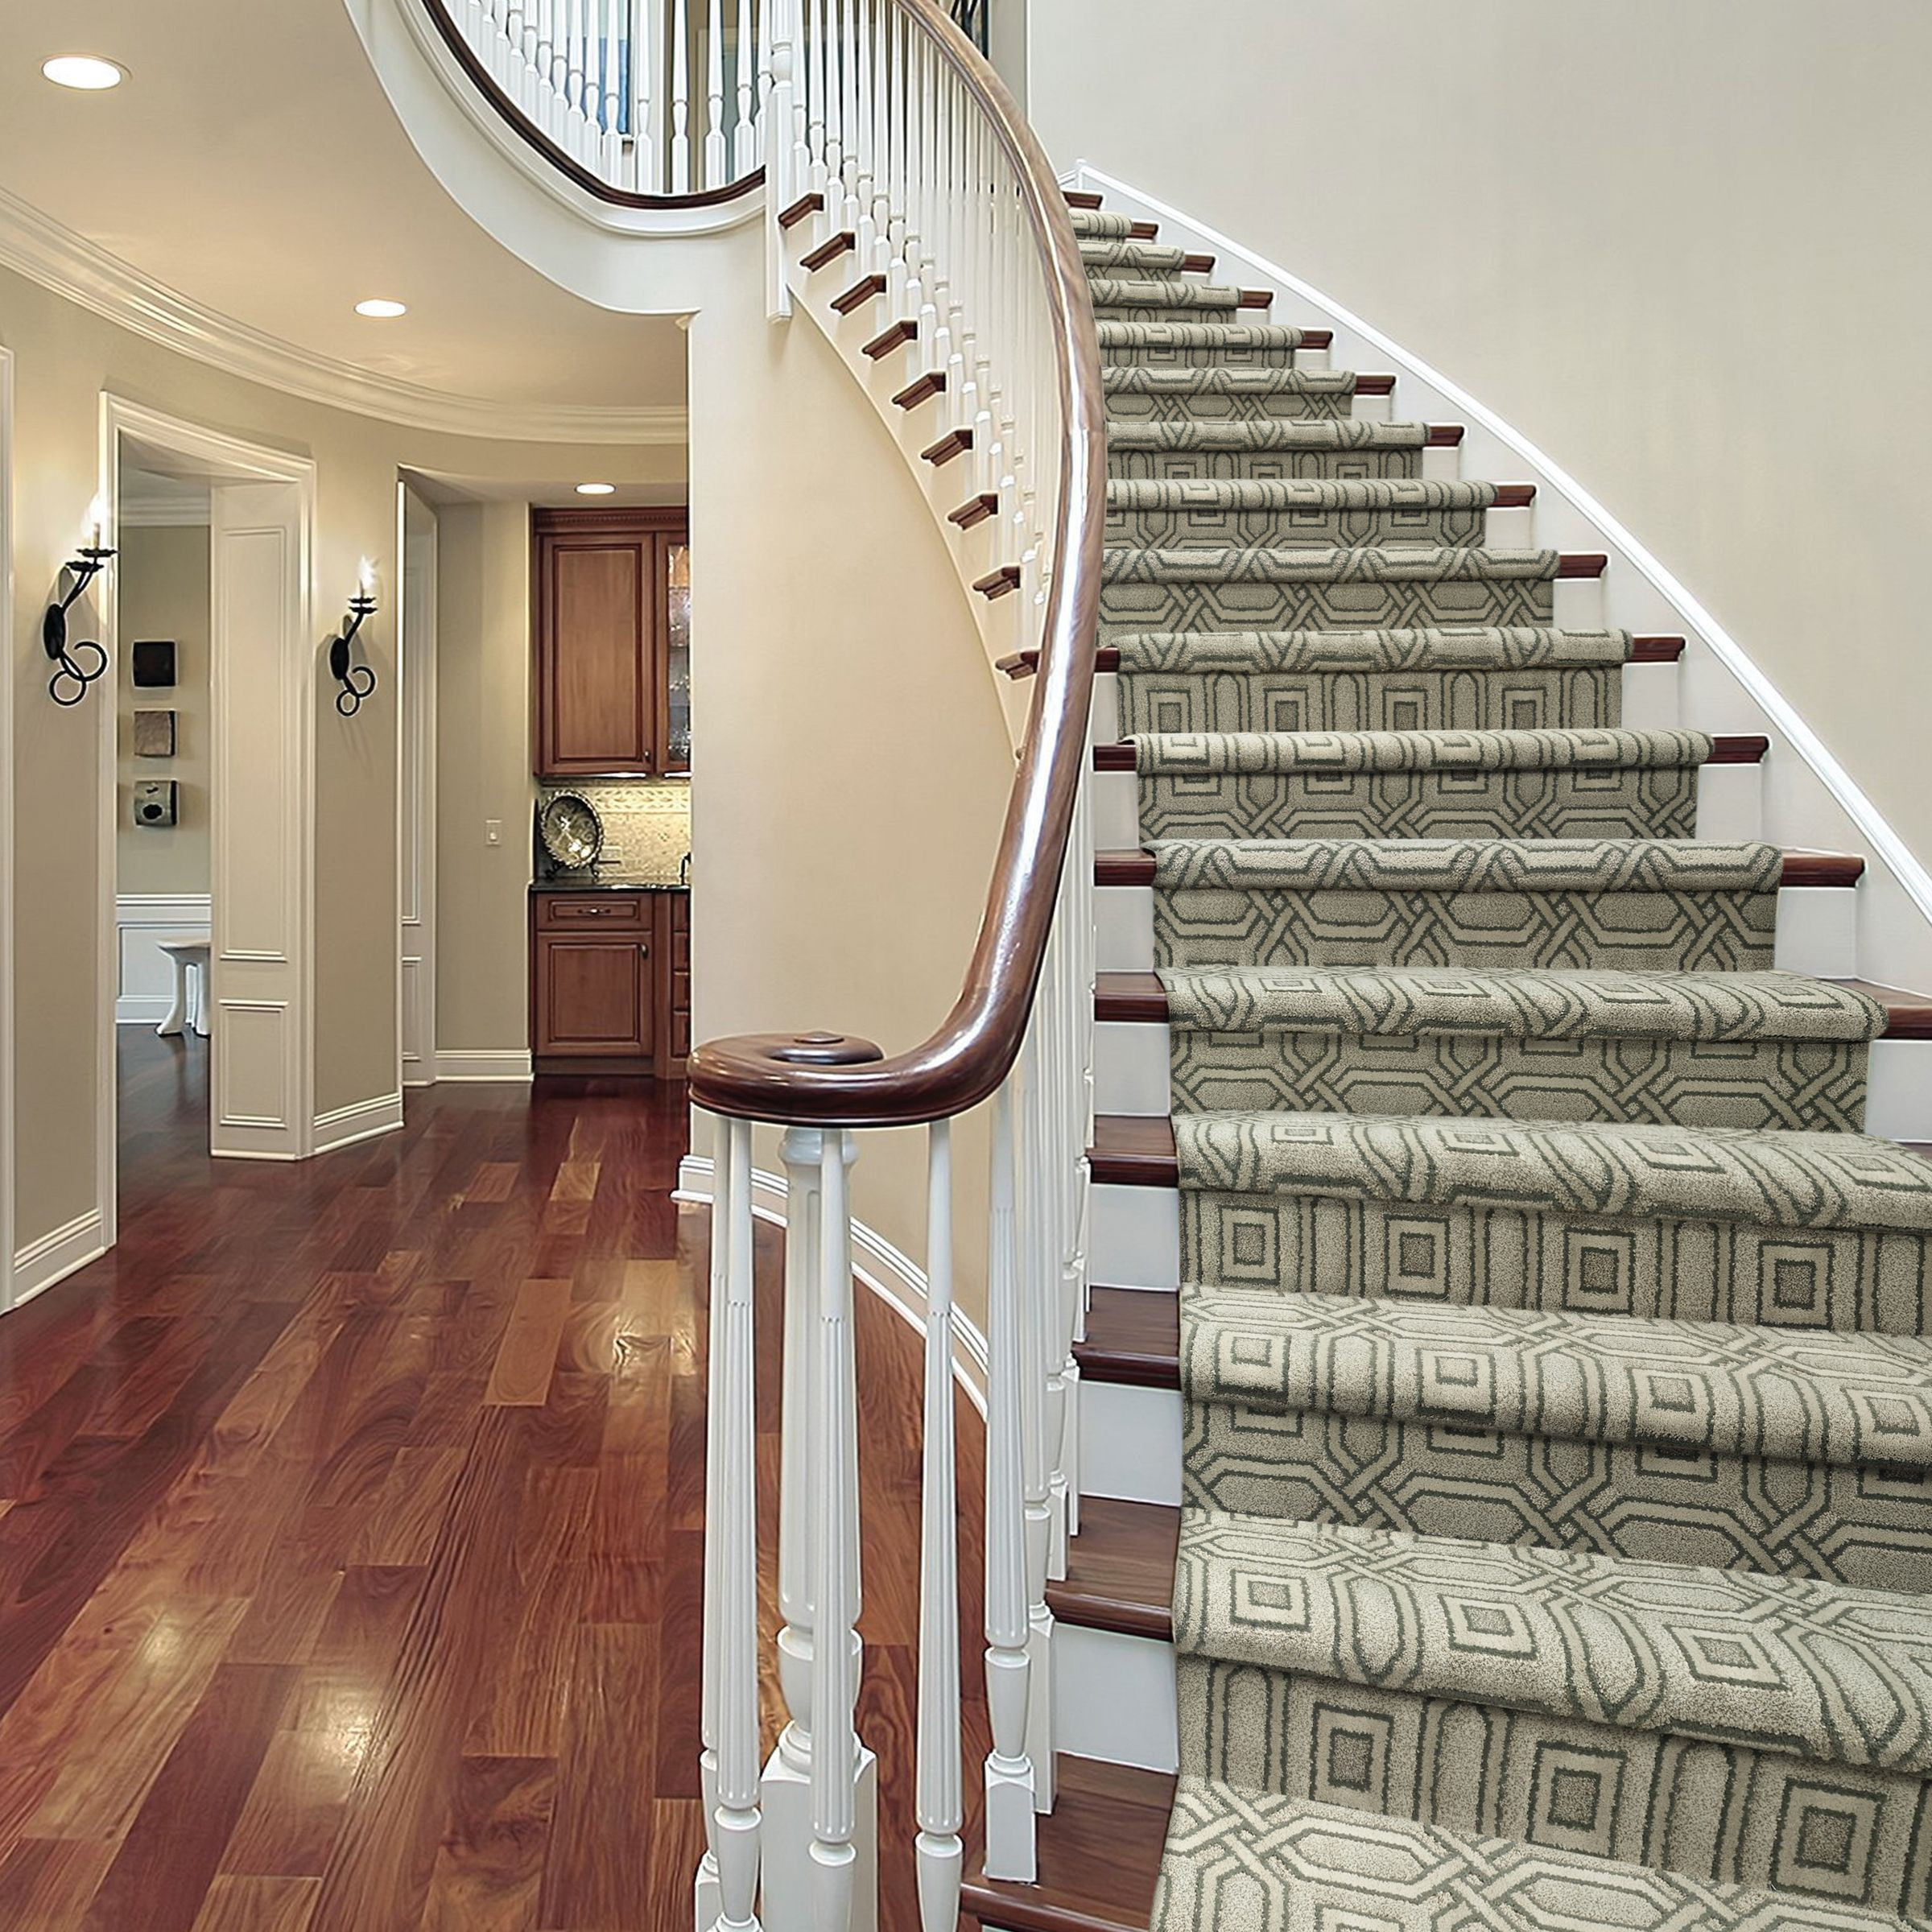 Hardwood Flooring Kansas City Of Tuftex Pavilion Tuftex Stanton Stairways Pinterest Pavilion Regarding Tuftex Pavilion Hardwood Floors Stairways Rugs On Carpet Pavilion Villa Stairs